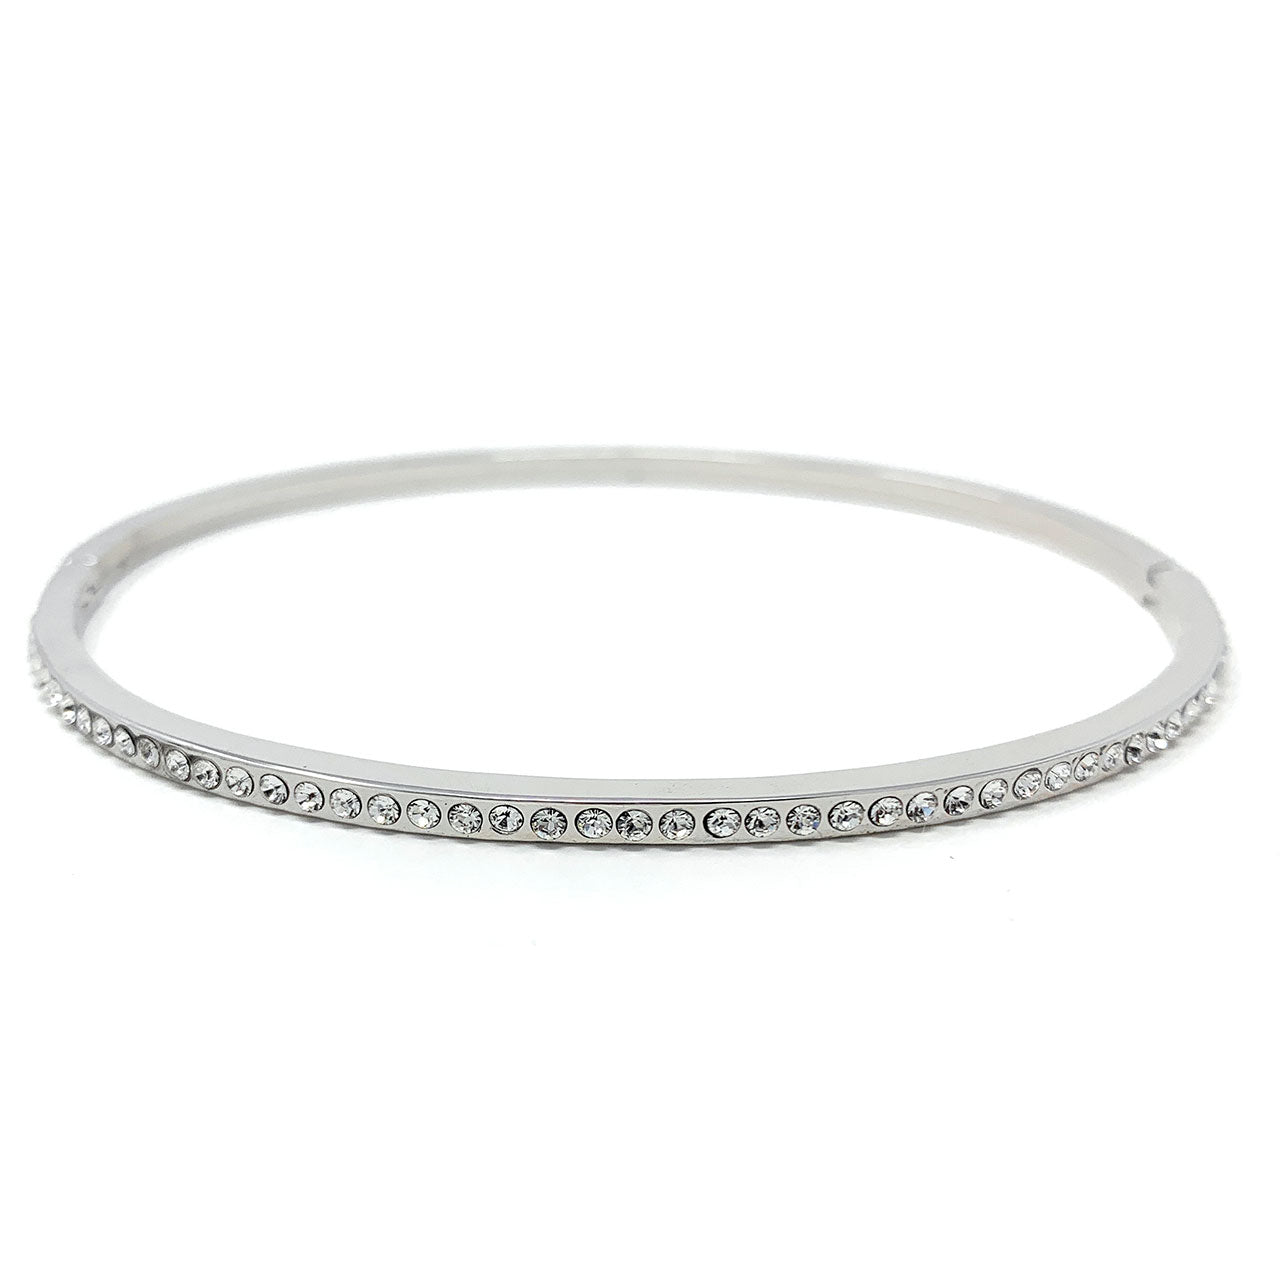 Amelia Pave Bangle Bracelet with White Clear Round Crystals from Swarovski Silver Toned Rhodium Plated - Ed Heart